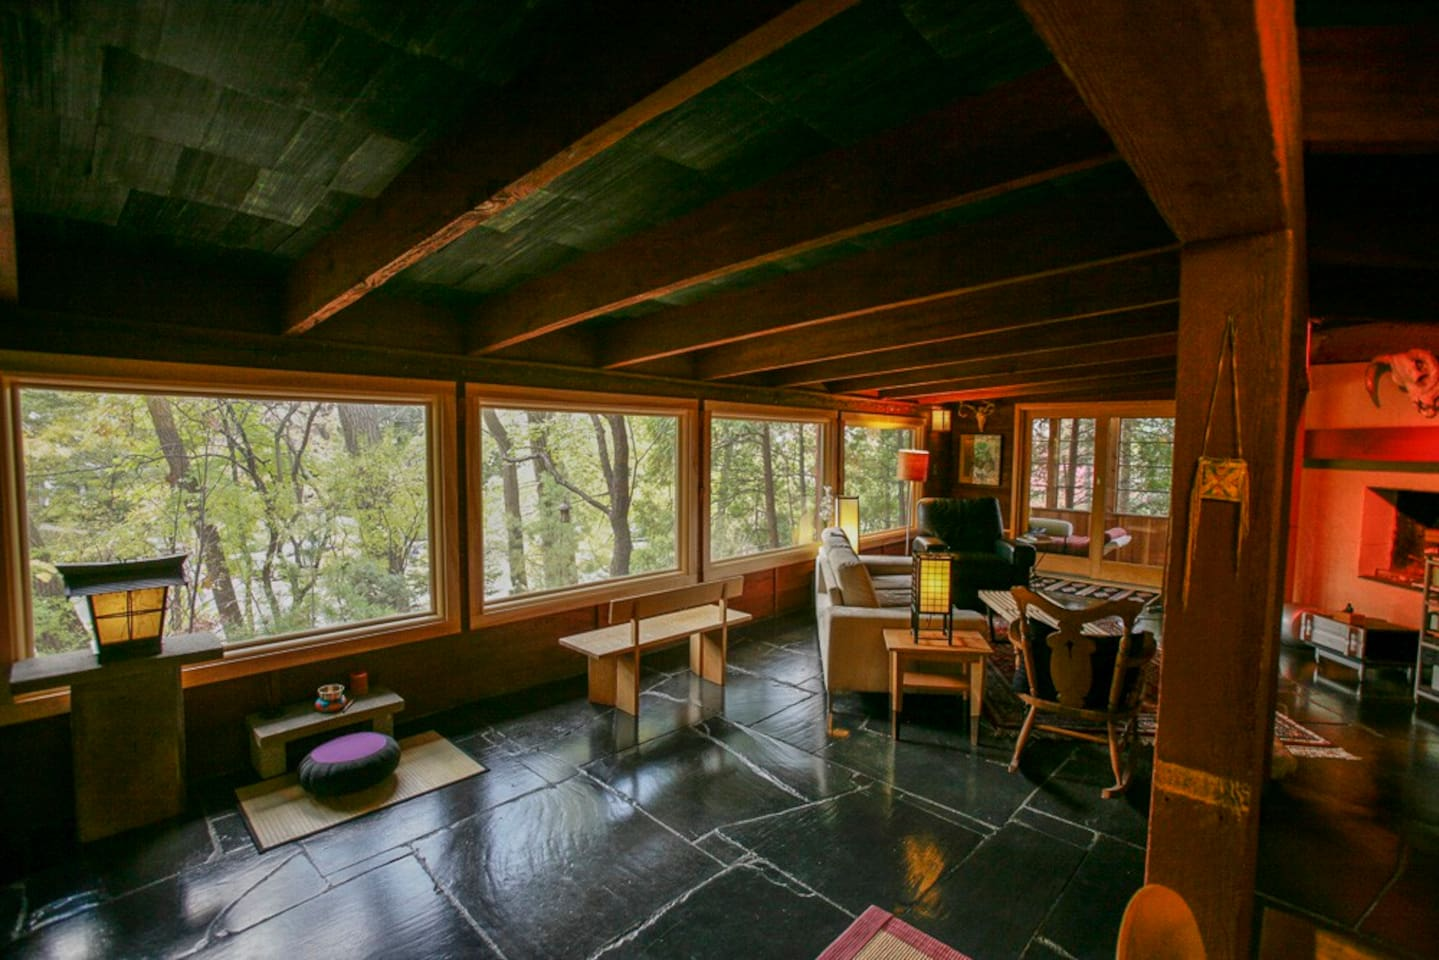 Living room, with black slate floors, looking over gardens and wall of trees. Complete privacy in an urban setting.